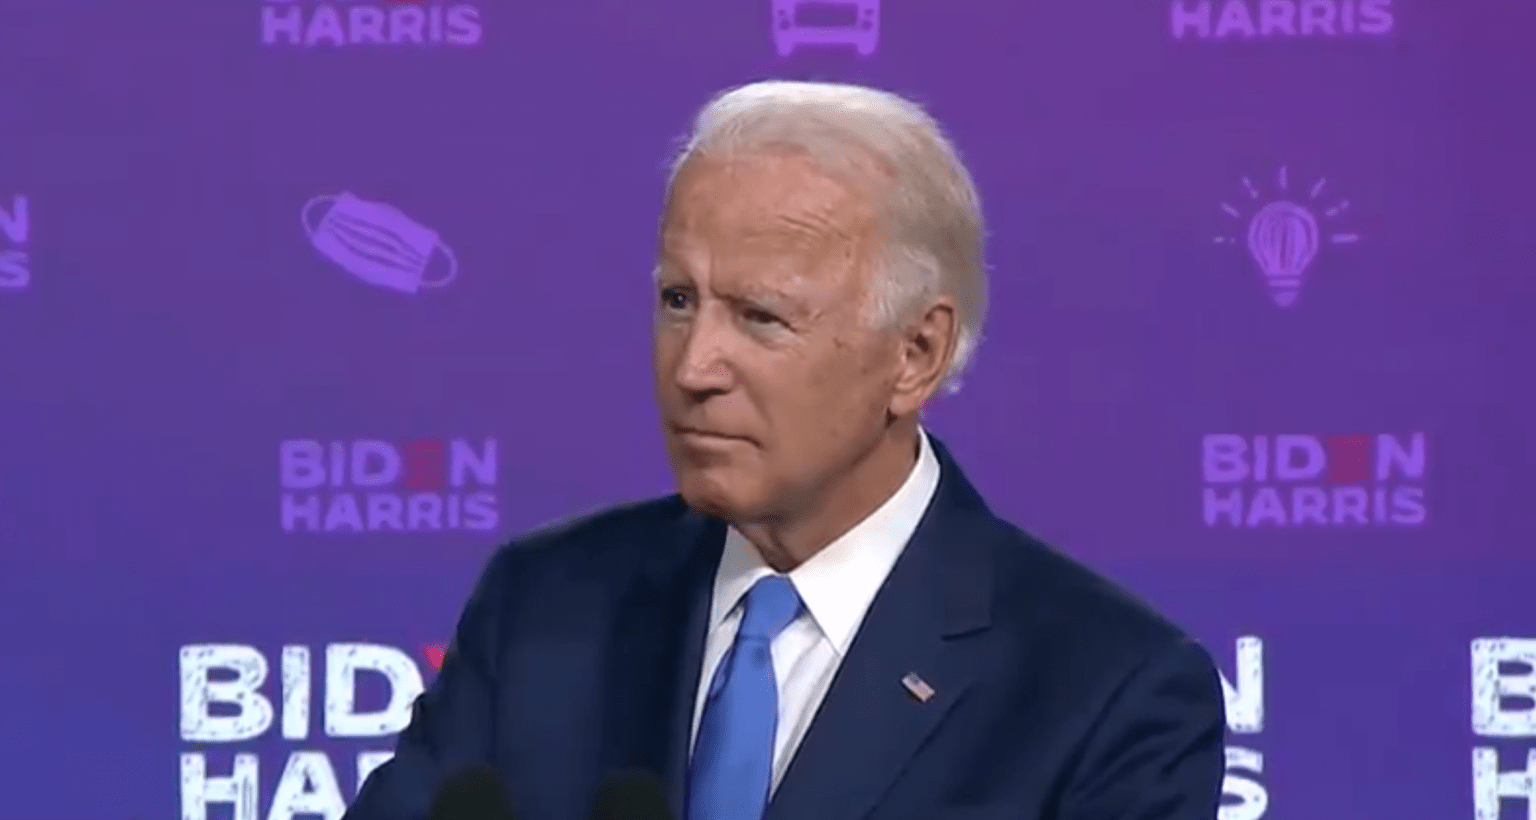 Biden's latest gaffe: Says Breonna Taylor should be arrested - while trying to attack police officers.